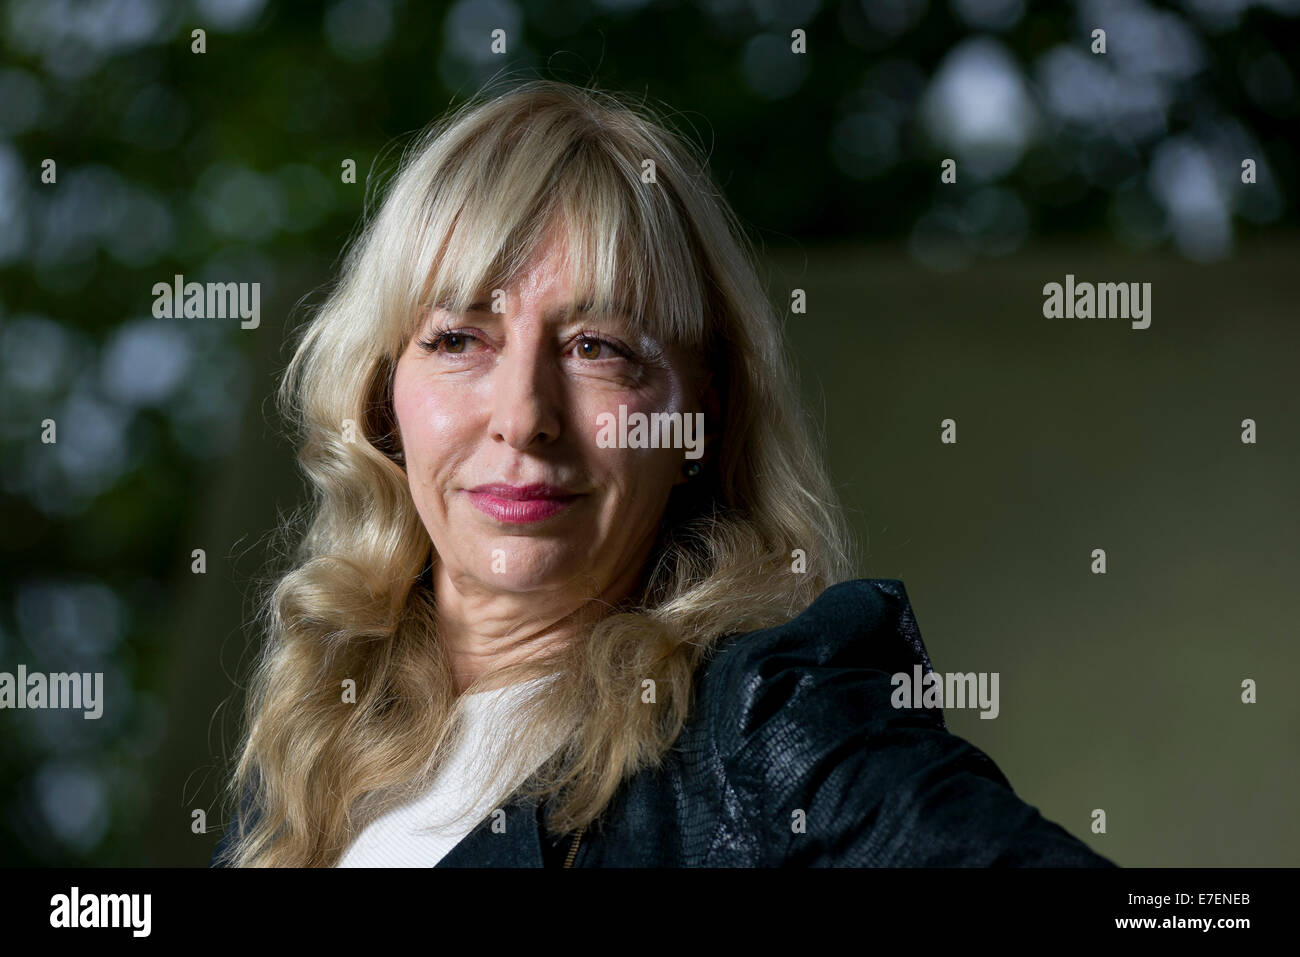 British scientist, writer, broadcaster, and member of the House of Lords Susan Greenfield, Baroness Greenfield, - Stock Image